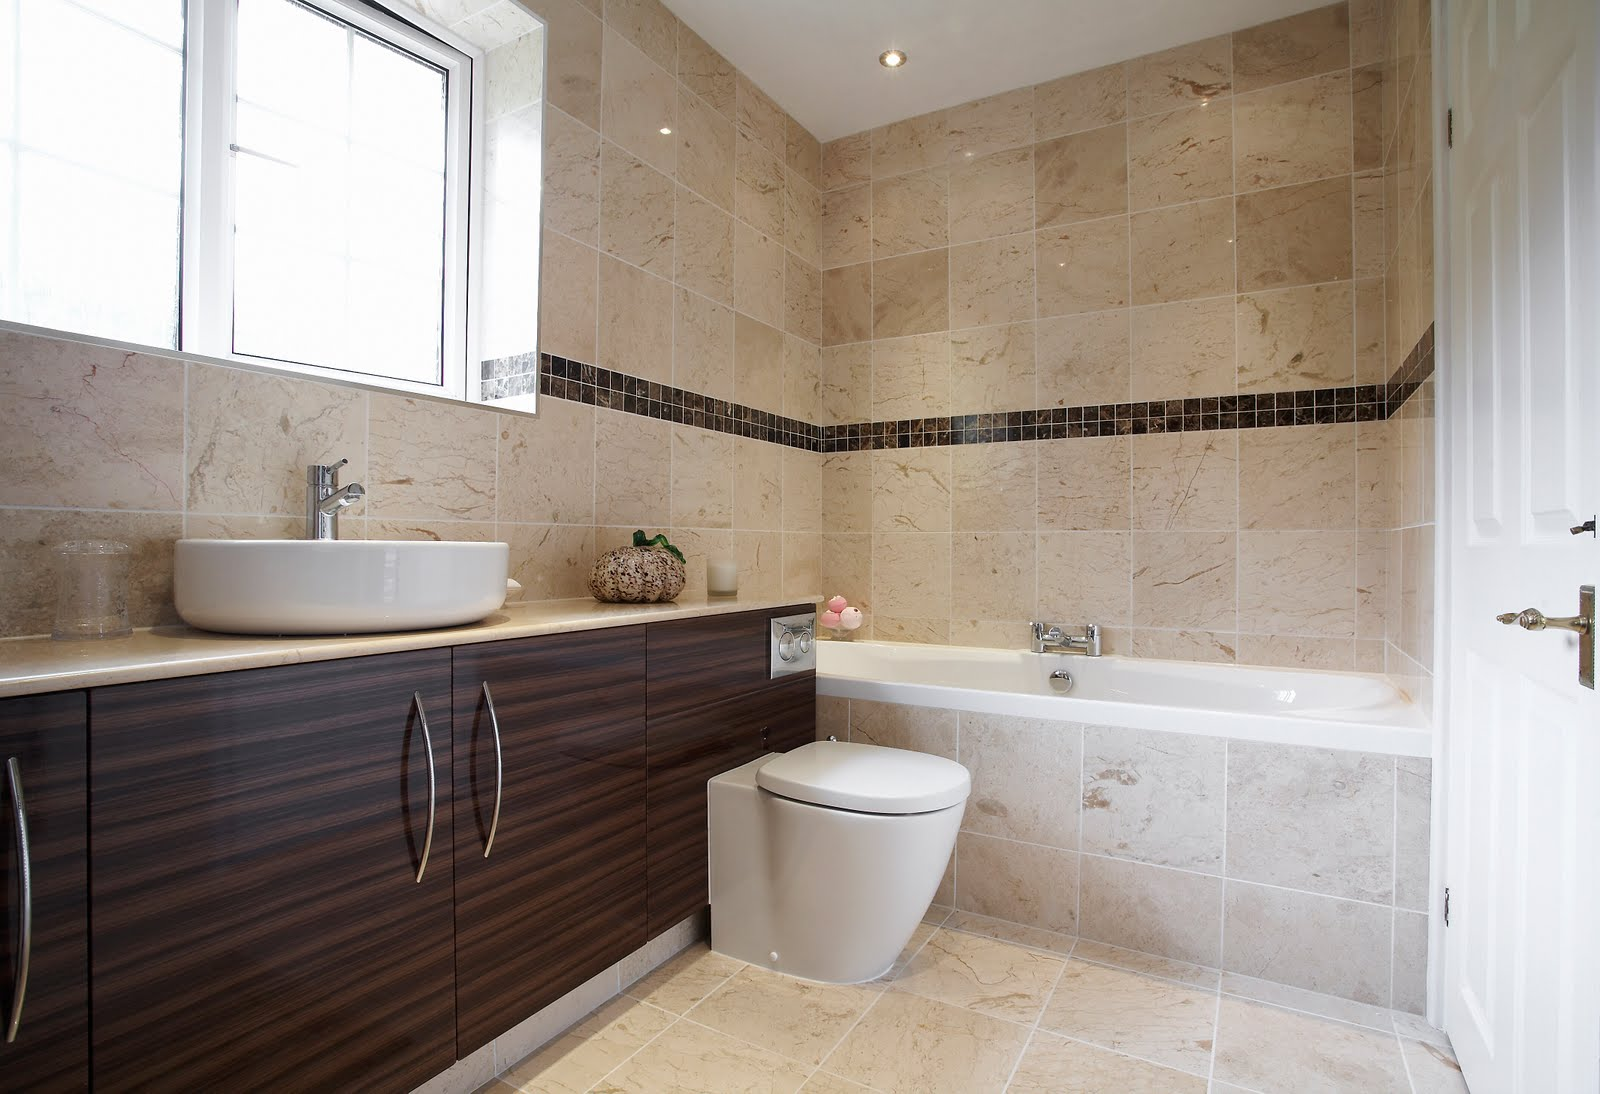 Cymru kitchens ltd cymru kitchens bathrooms for Kitchen bathroom photos